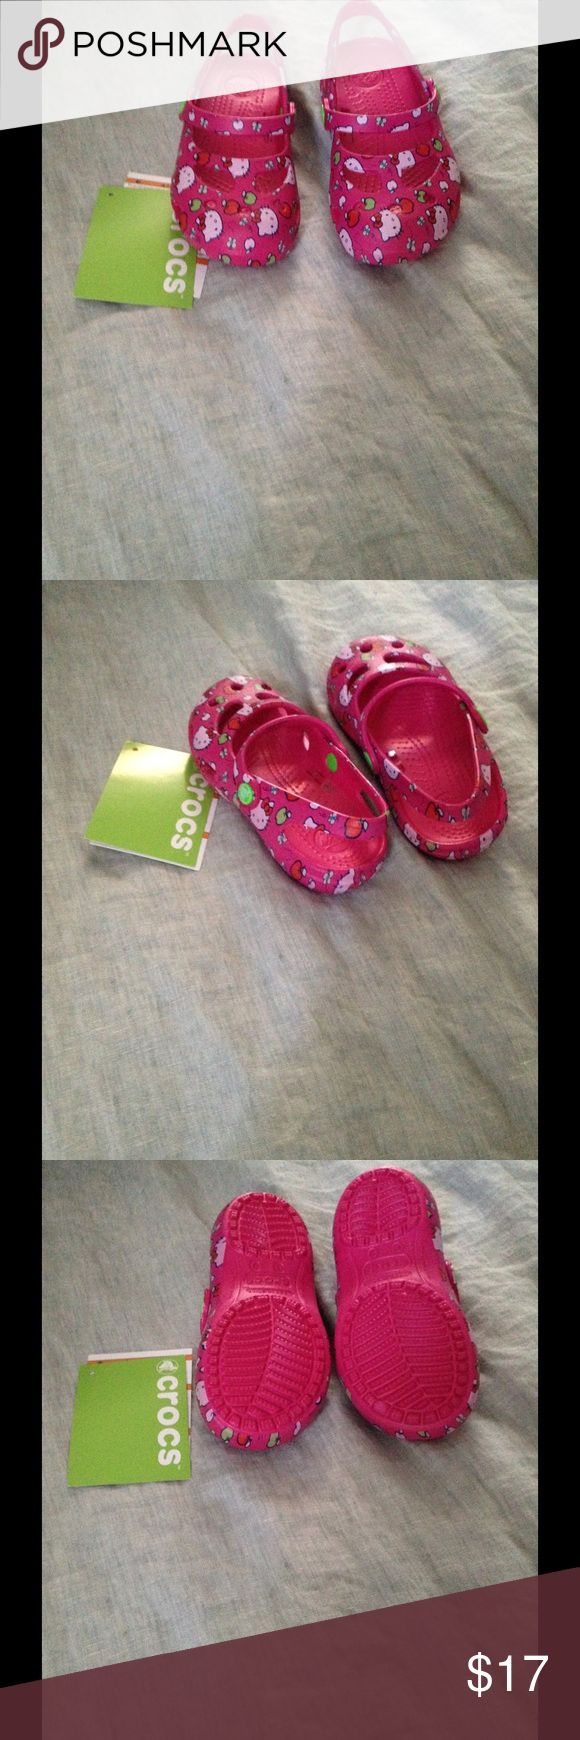 NWT Girls Crocs hello kitty Shayna maryjanes sz 9 Brand new Shayna maryjanes Crocs in Hello Kitty print, toddler girls size 9. Will be posting the dress later - old navy crochet dress sz 4. CROCS Shoes Water Shoes